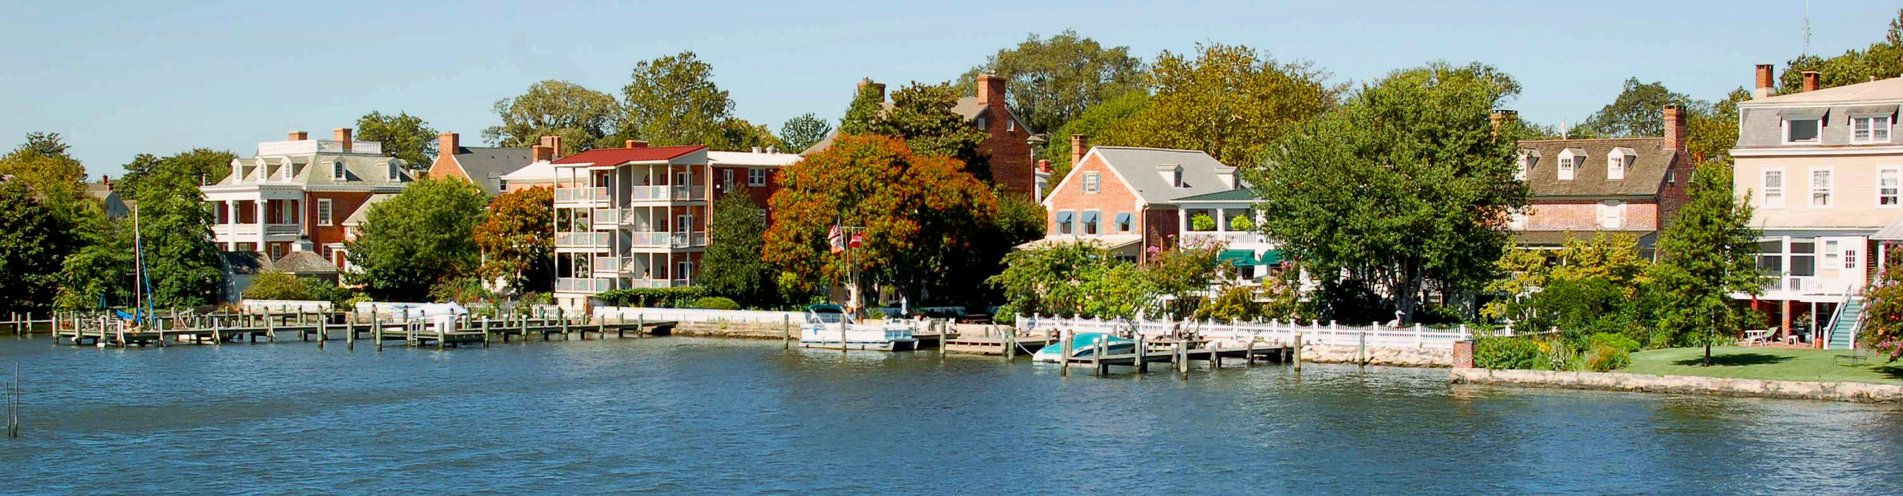 eastern shore of maryland real estate waterfront homes for sale rh easternshoreofmarylandrealestate com  homes for sale ireland coast